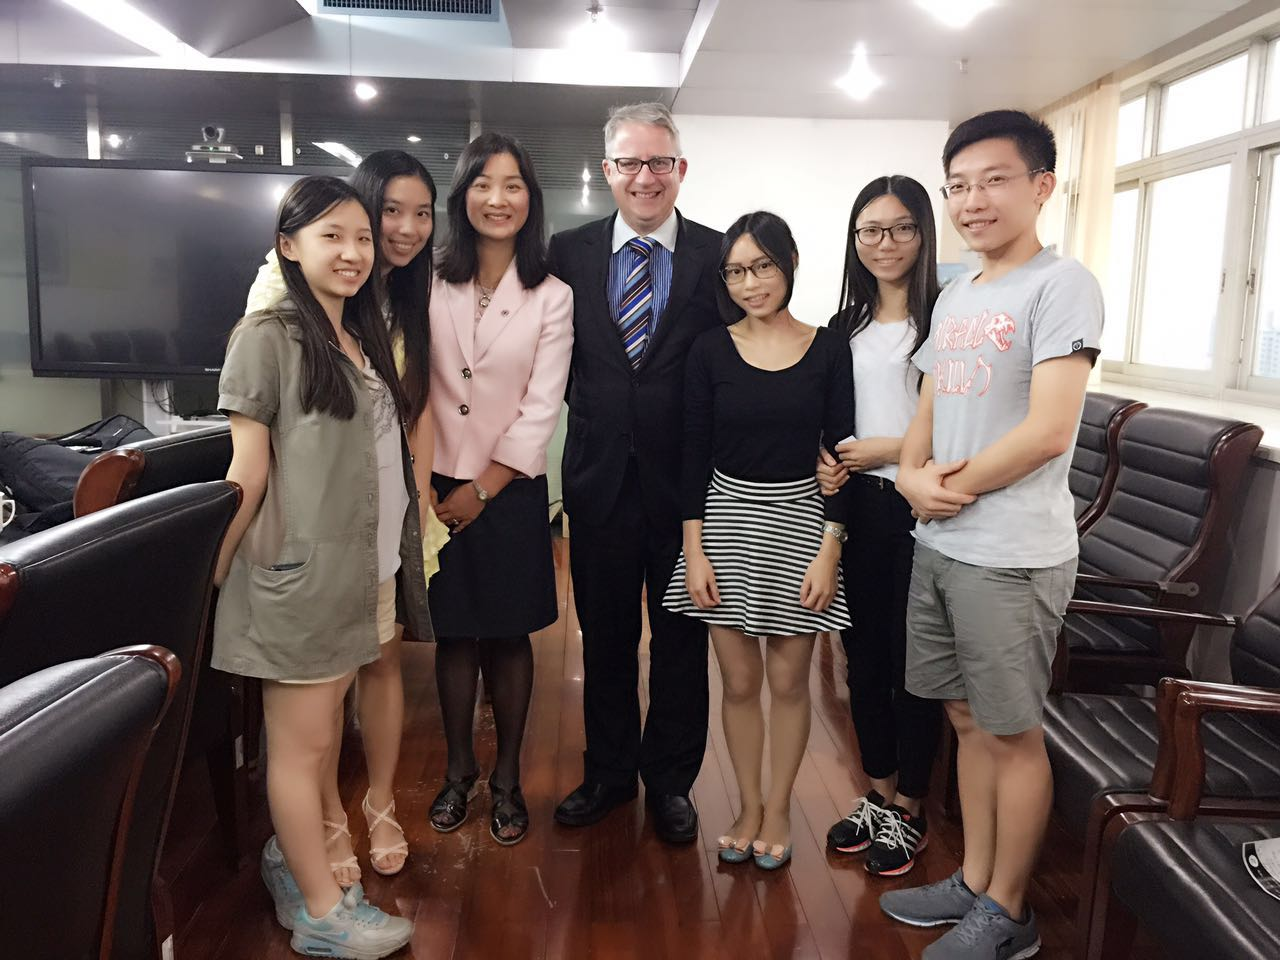 Guangdong Univ of Education visit on Nov 9, 2015